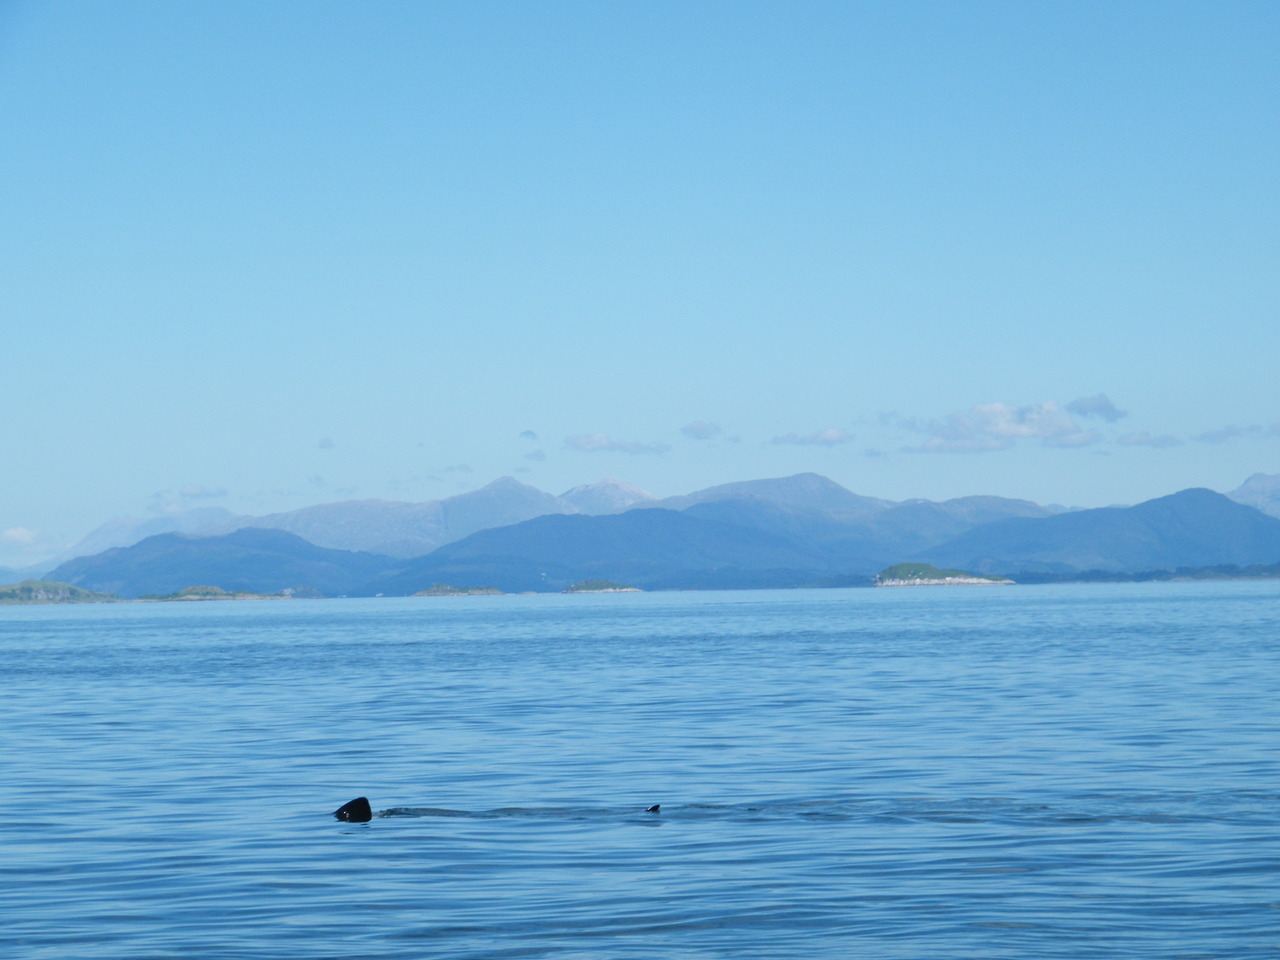 Basking Shark with Ben Nevis in the background